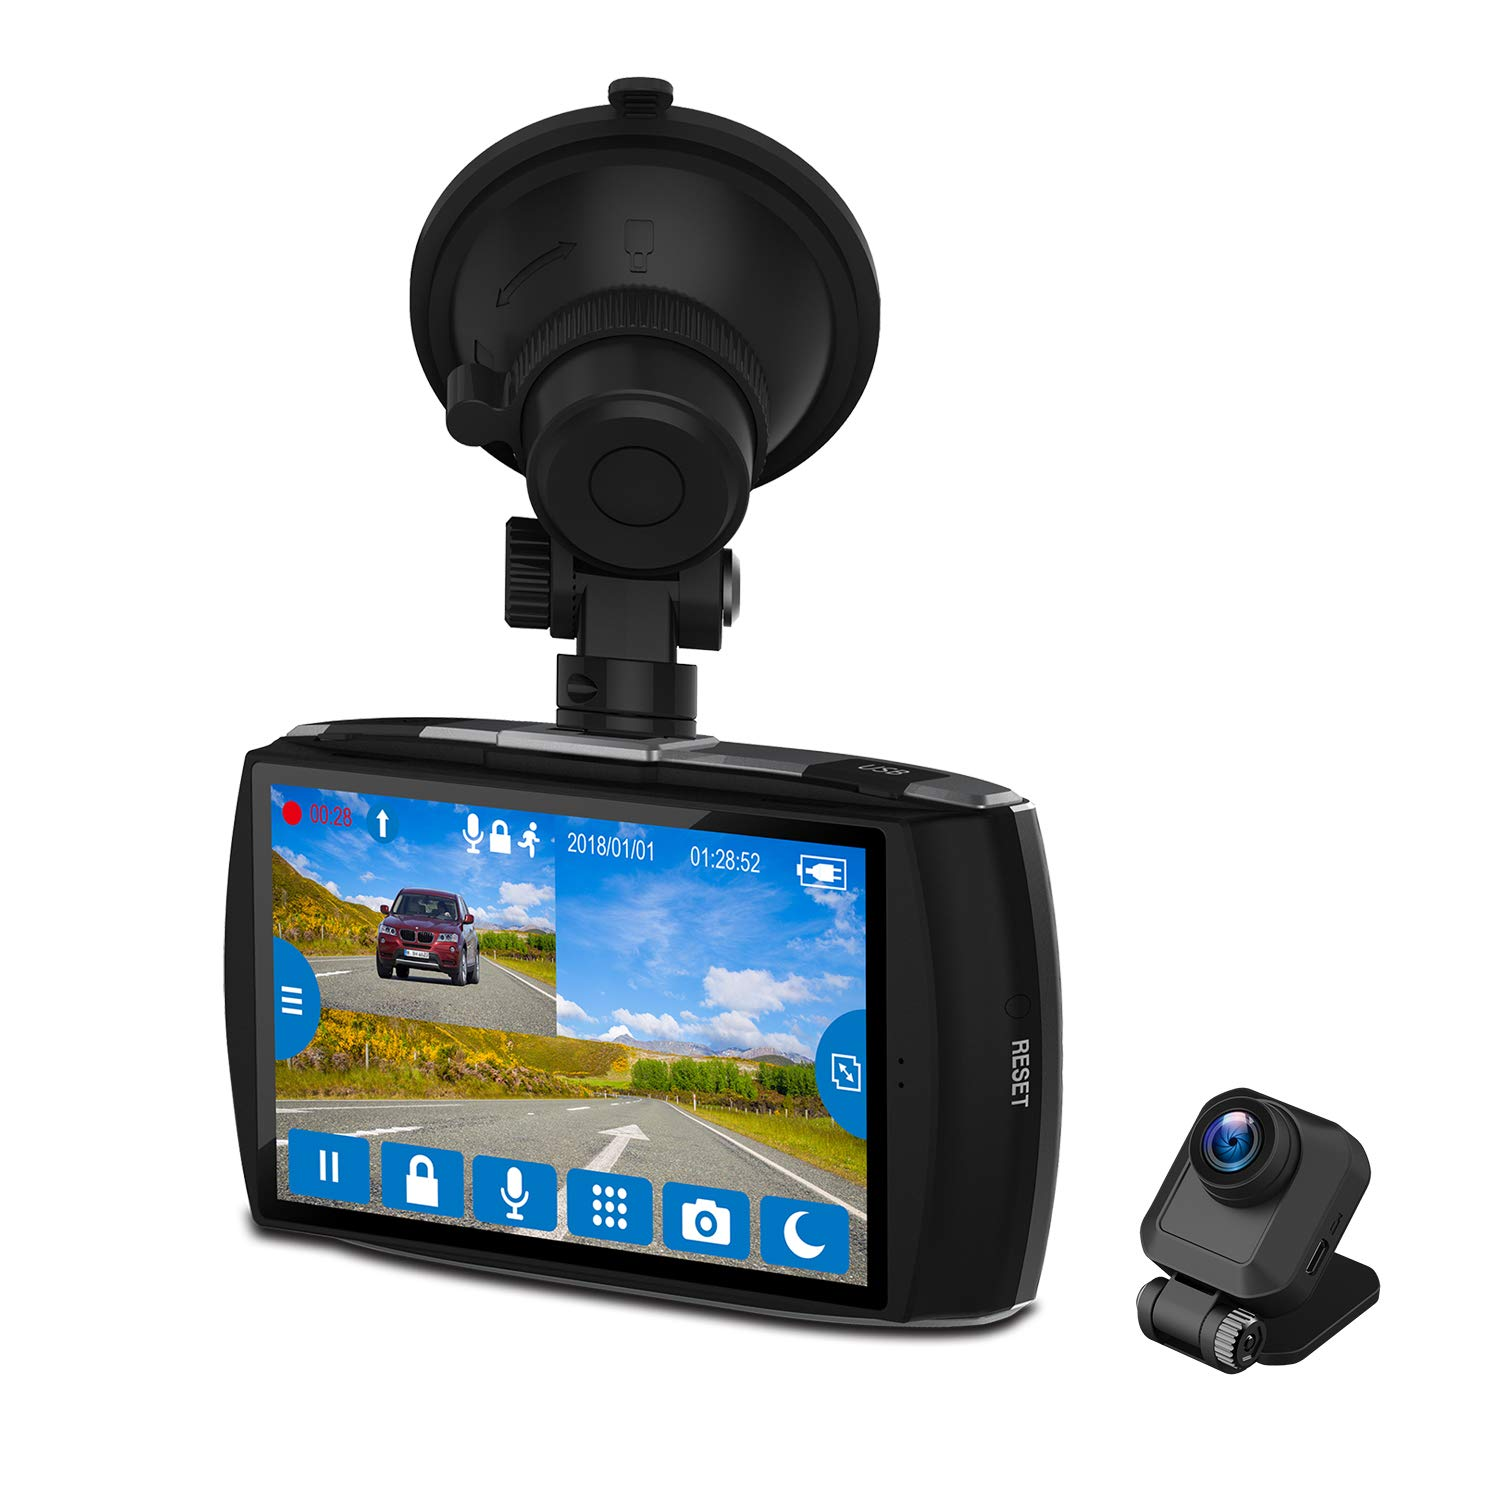 Z-Edge Dash Cam Front and Rear 4.0″ Touch Screen Dual Dash Cam FHD 1080P with Night Mode, 32GB Card Included,155 Degree Wide Angle, WDR, G-Sensor, Loop Recording, Support 128GB Max